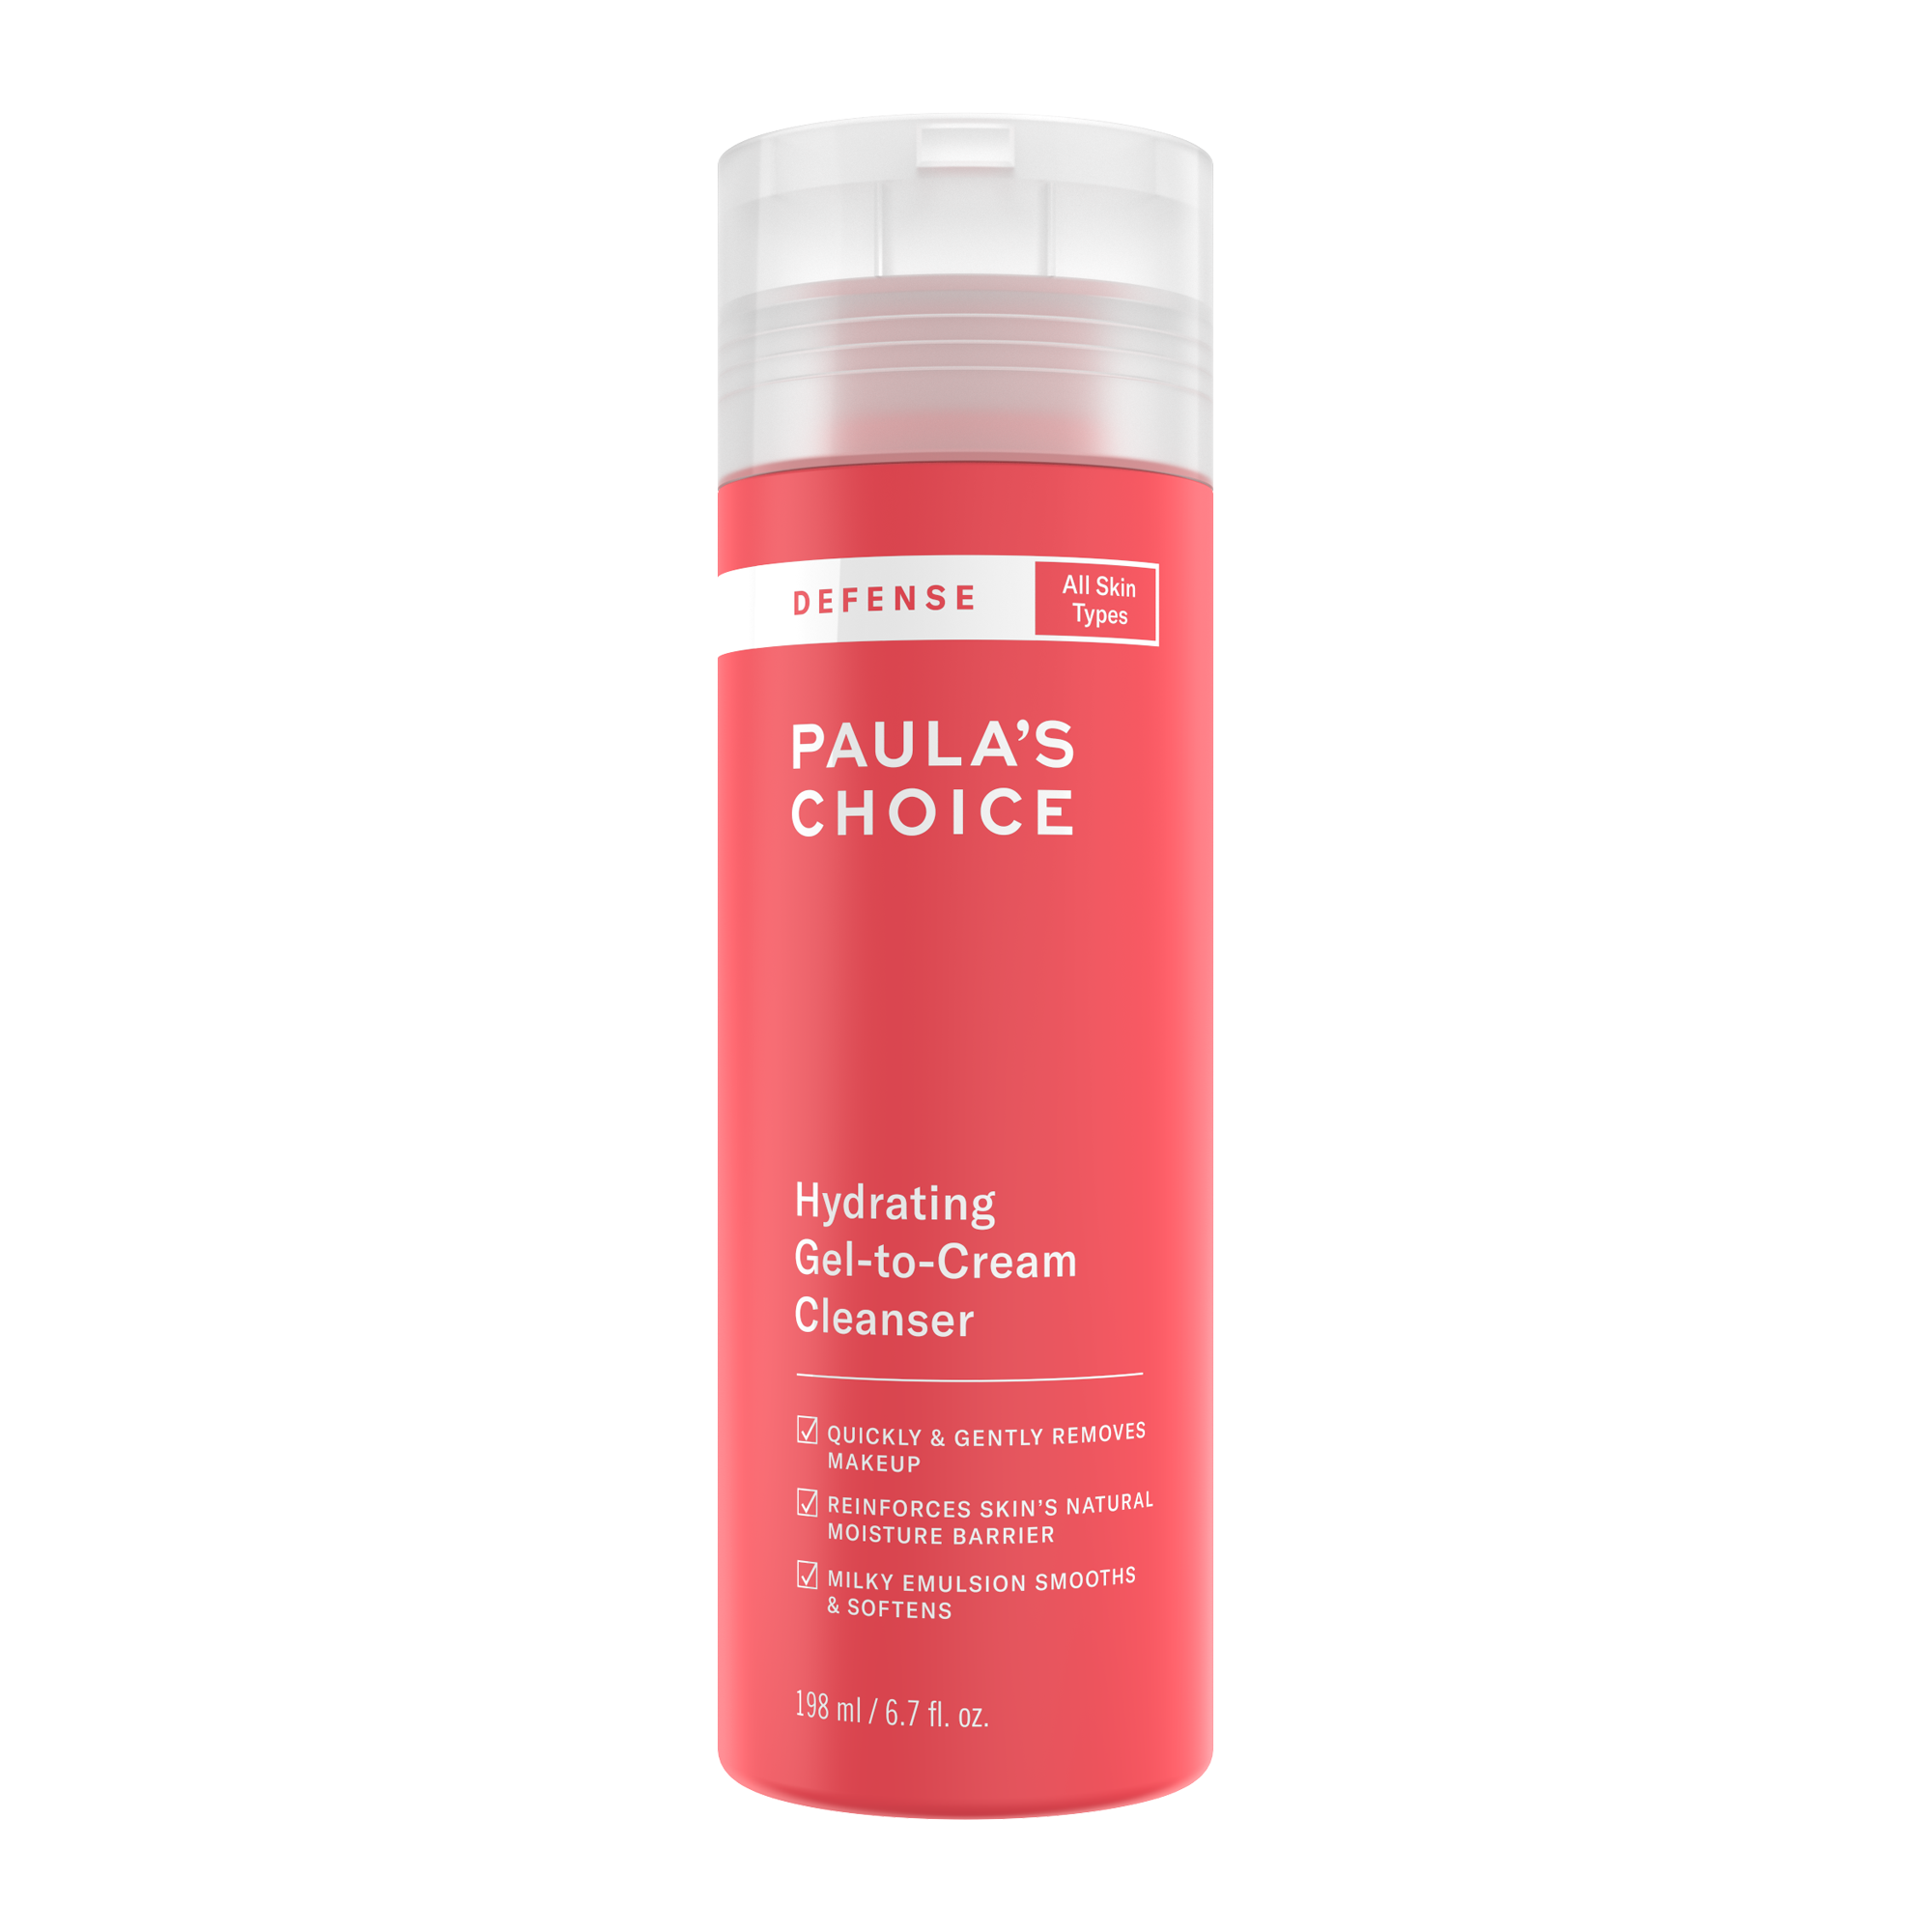 defense-hydrating-gel-to-cream-cleanser-2210-L.png